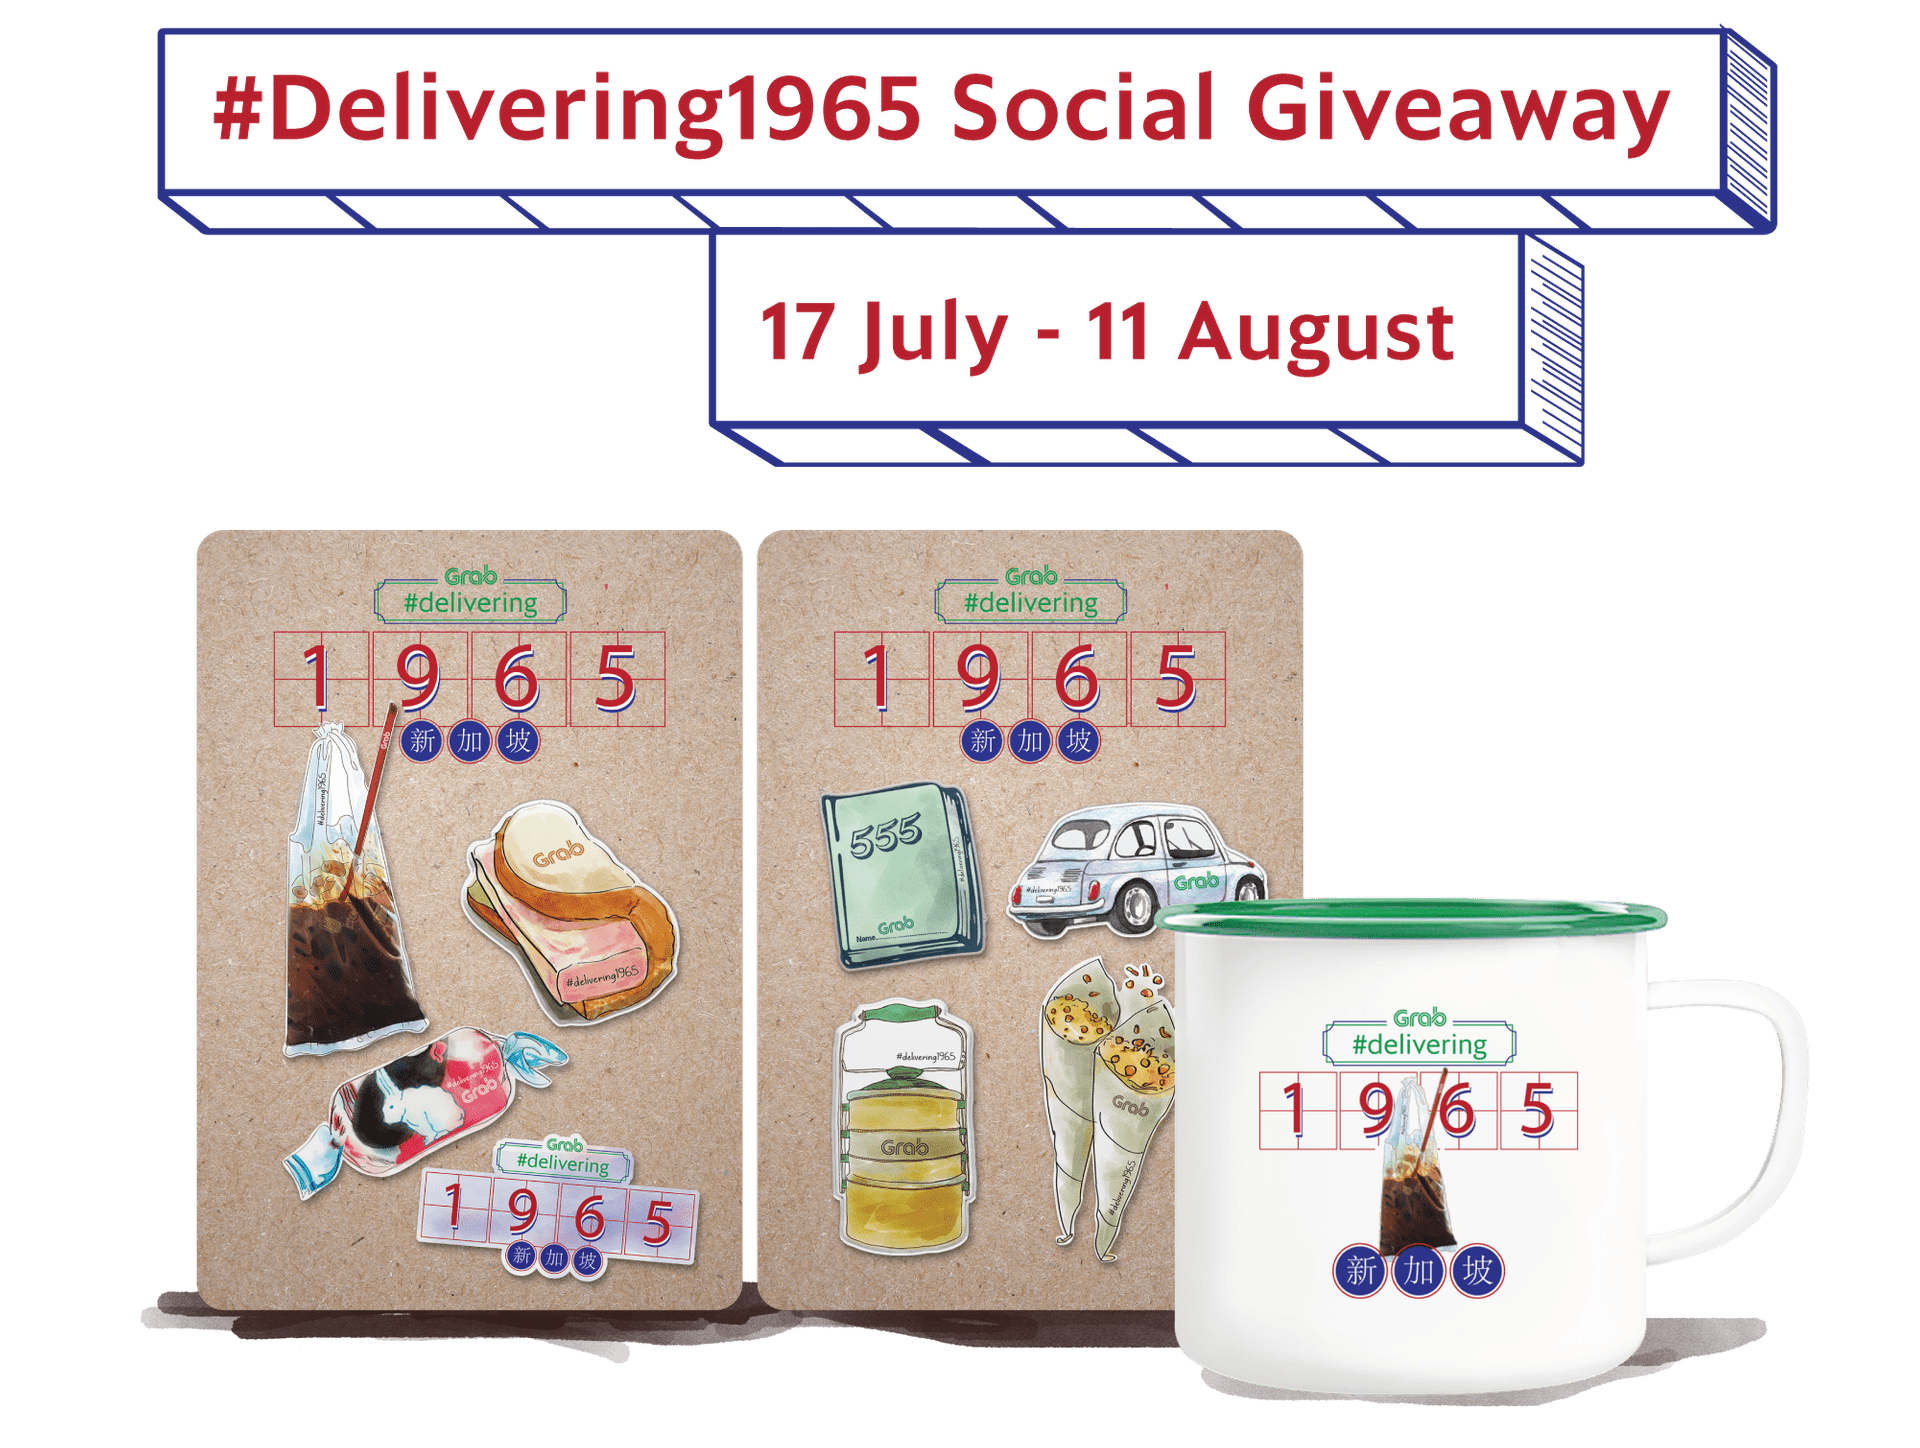 #Delivering1965 Social Giveaway 17 July - 11 August